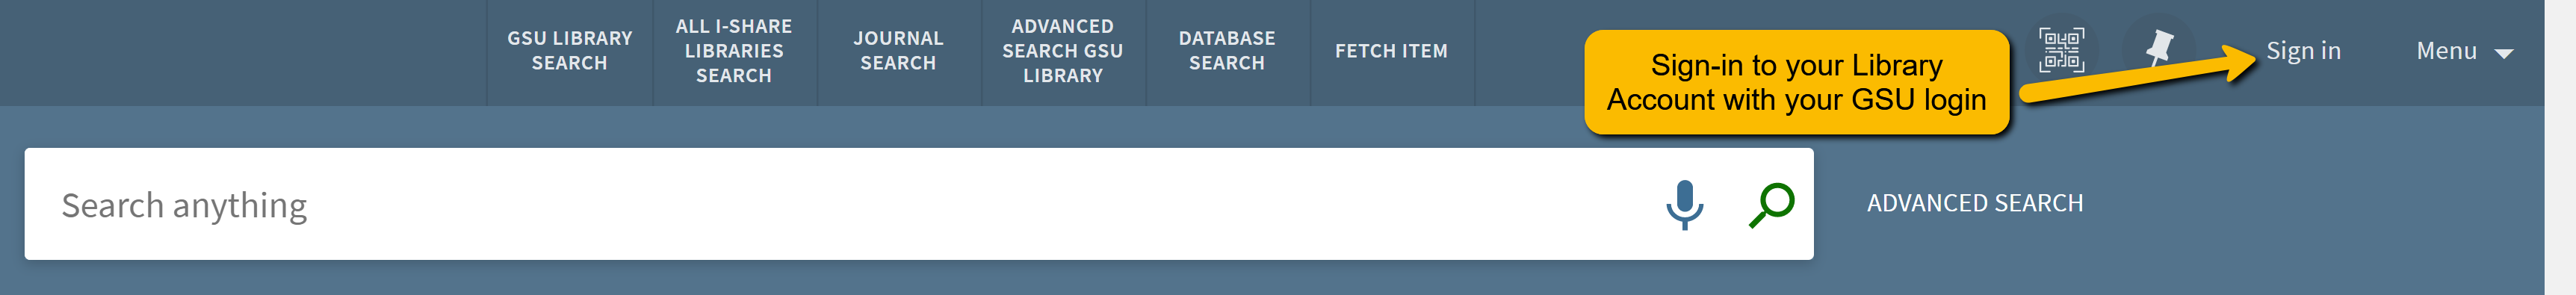 Sign-in to the library catalog